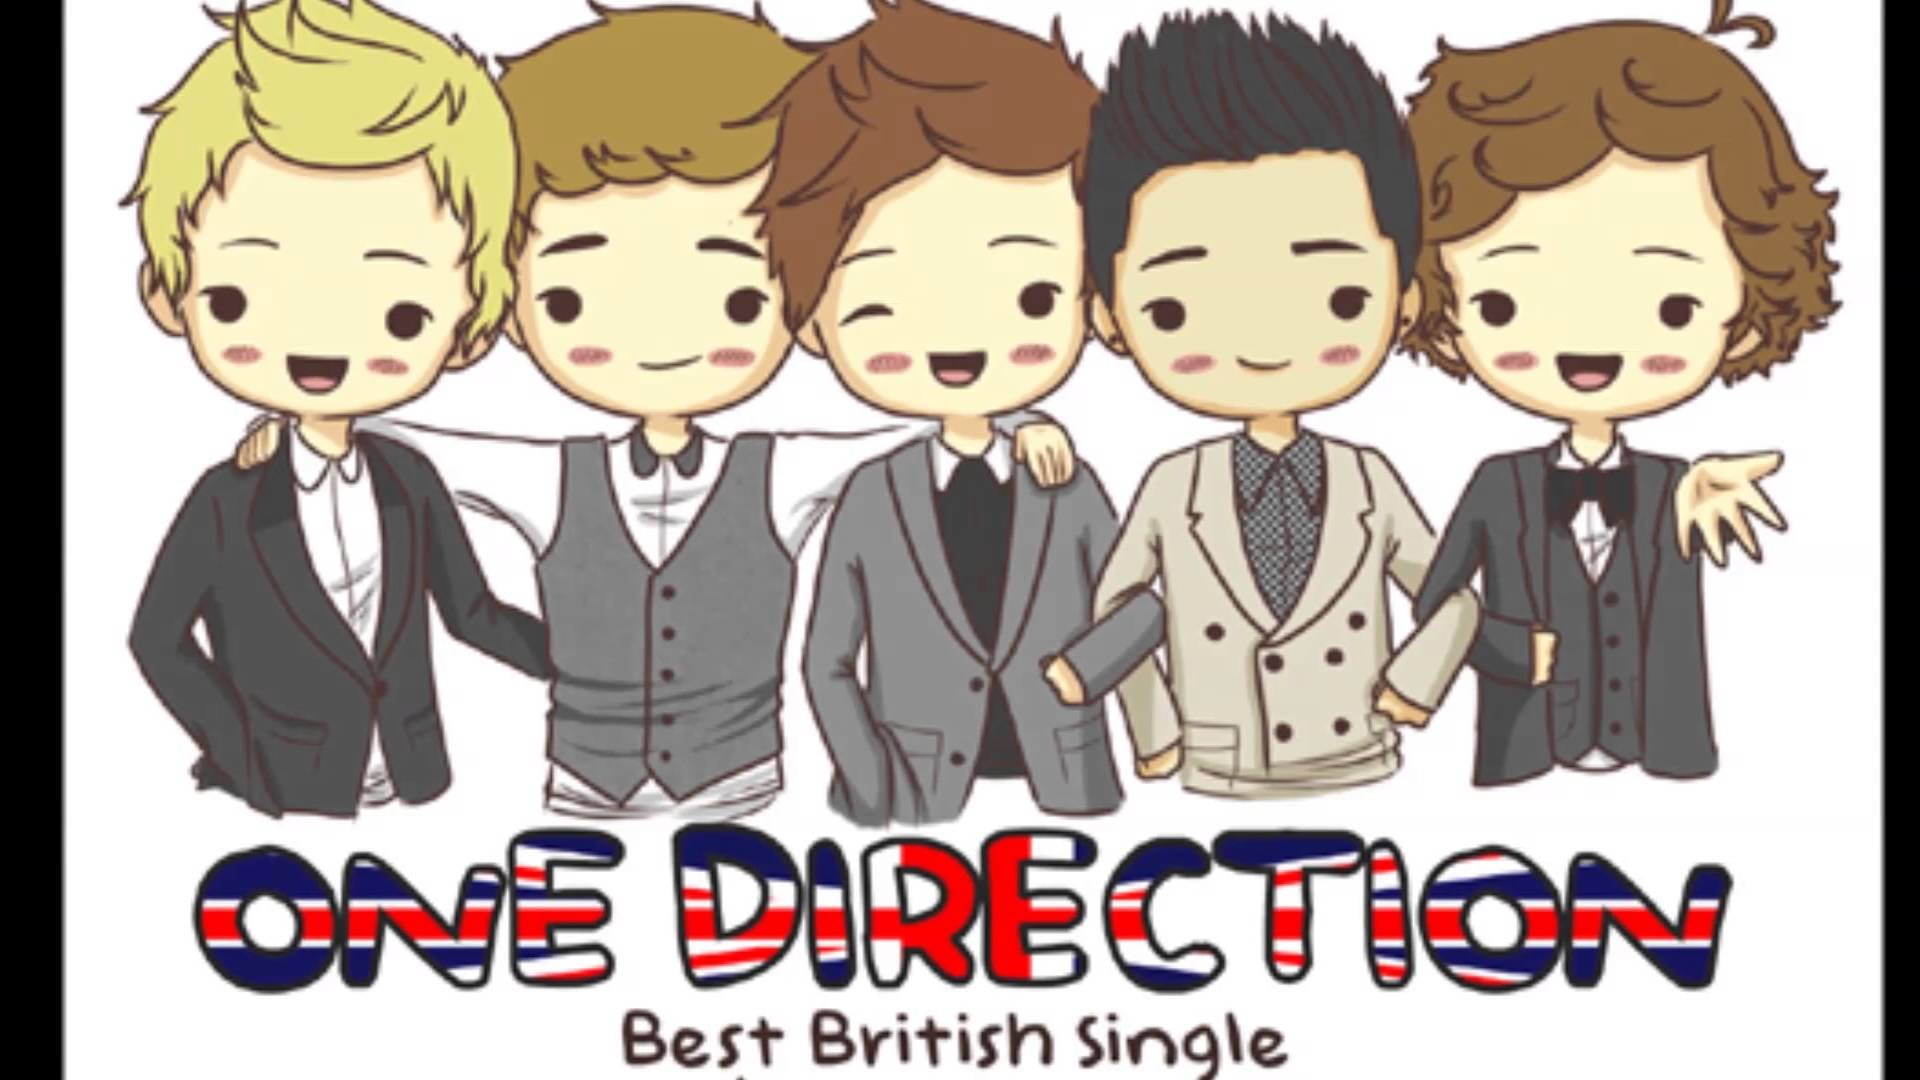 One Direction Cartoon Images | TheCelebrityPix